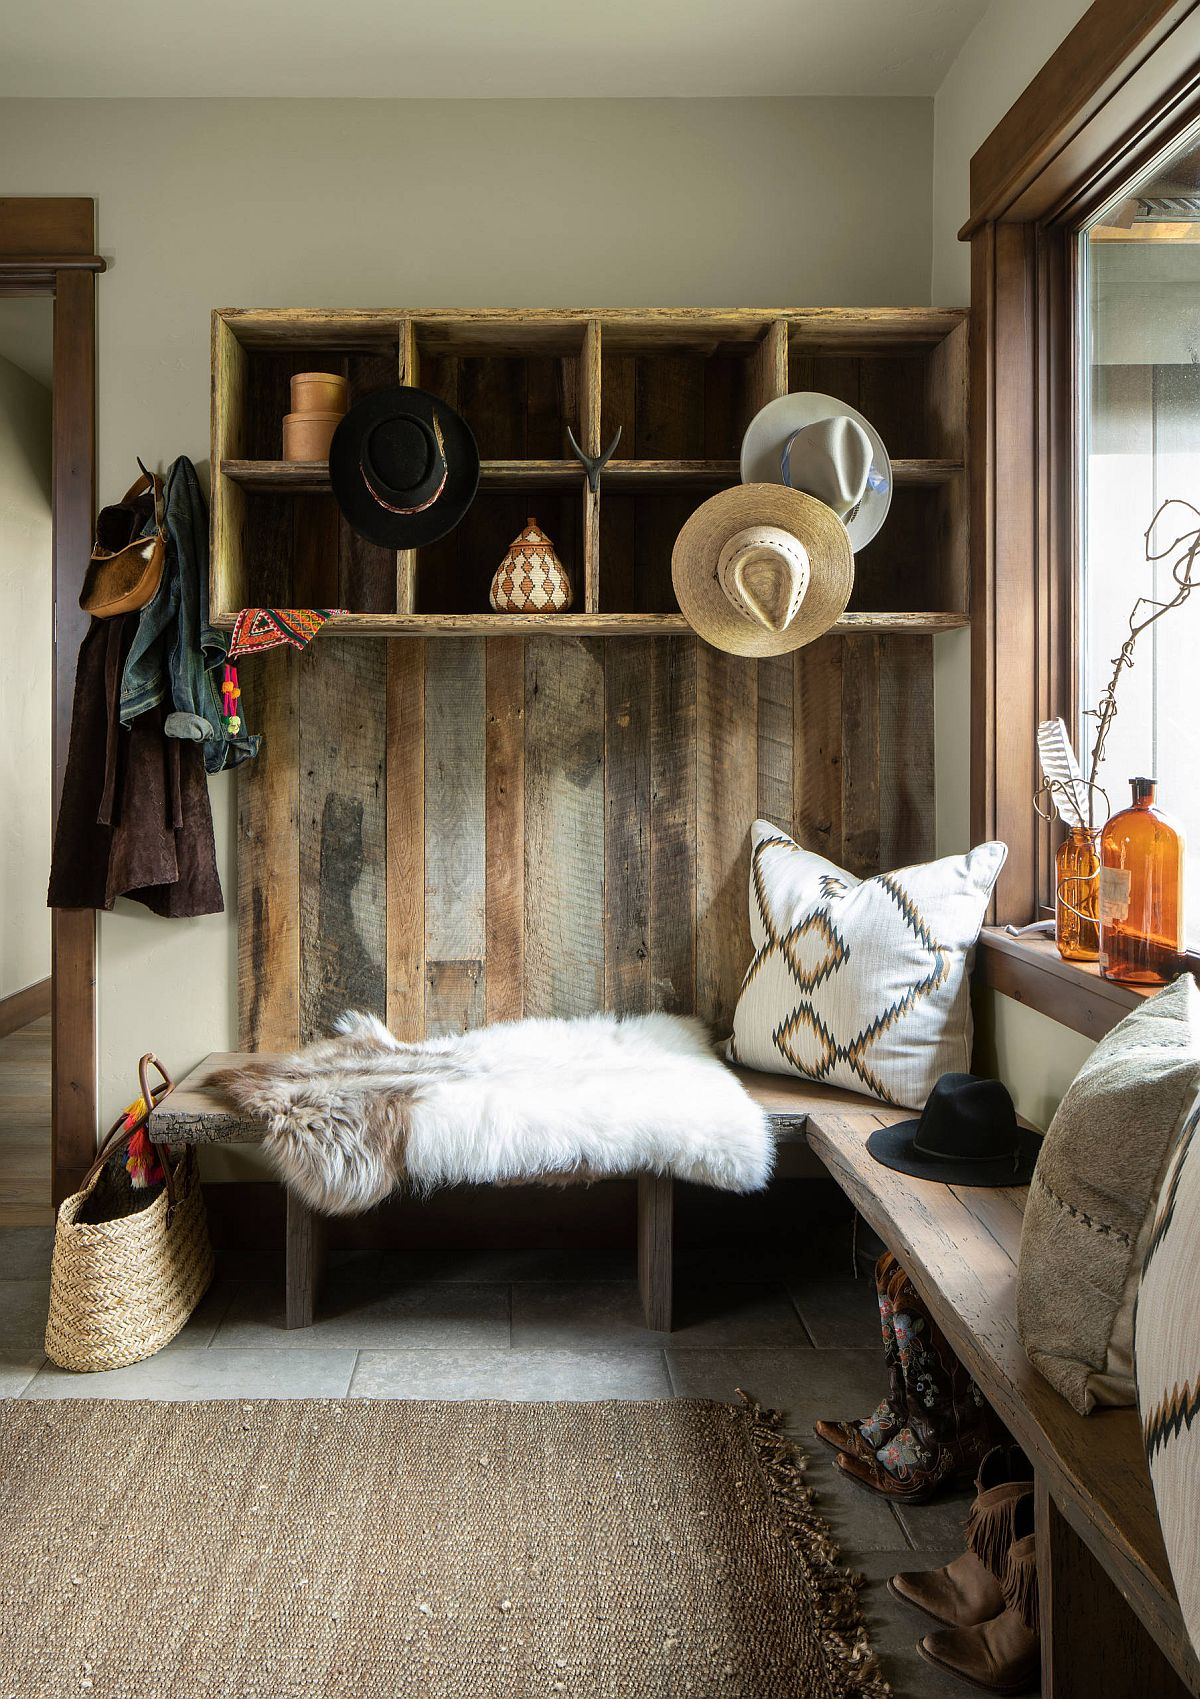 Using reclaimed wood for the entry gives it a more authentic rustic vibe